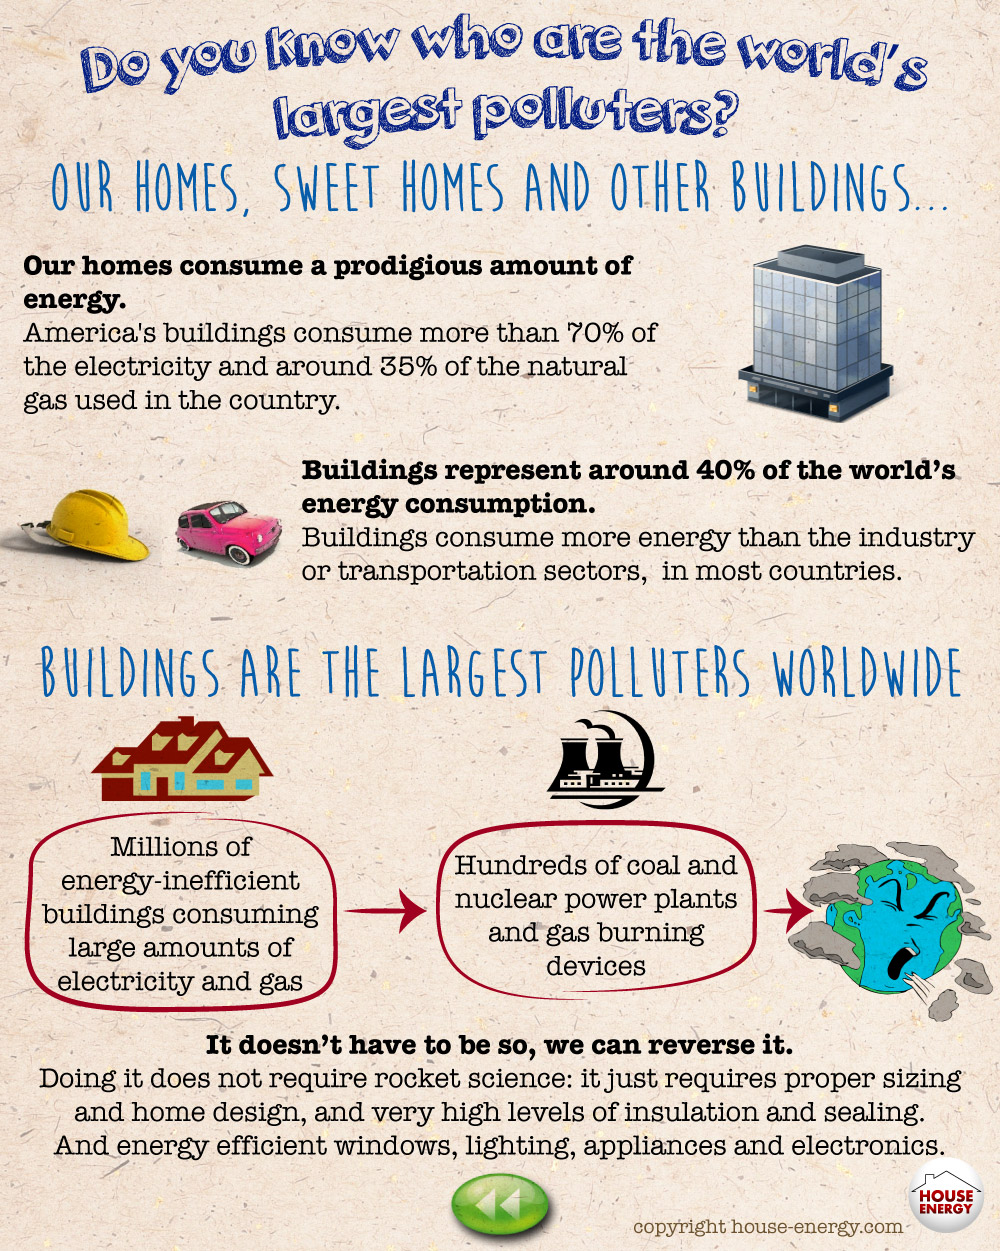 Homes and buildings, the largest polluters worldwide